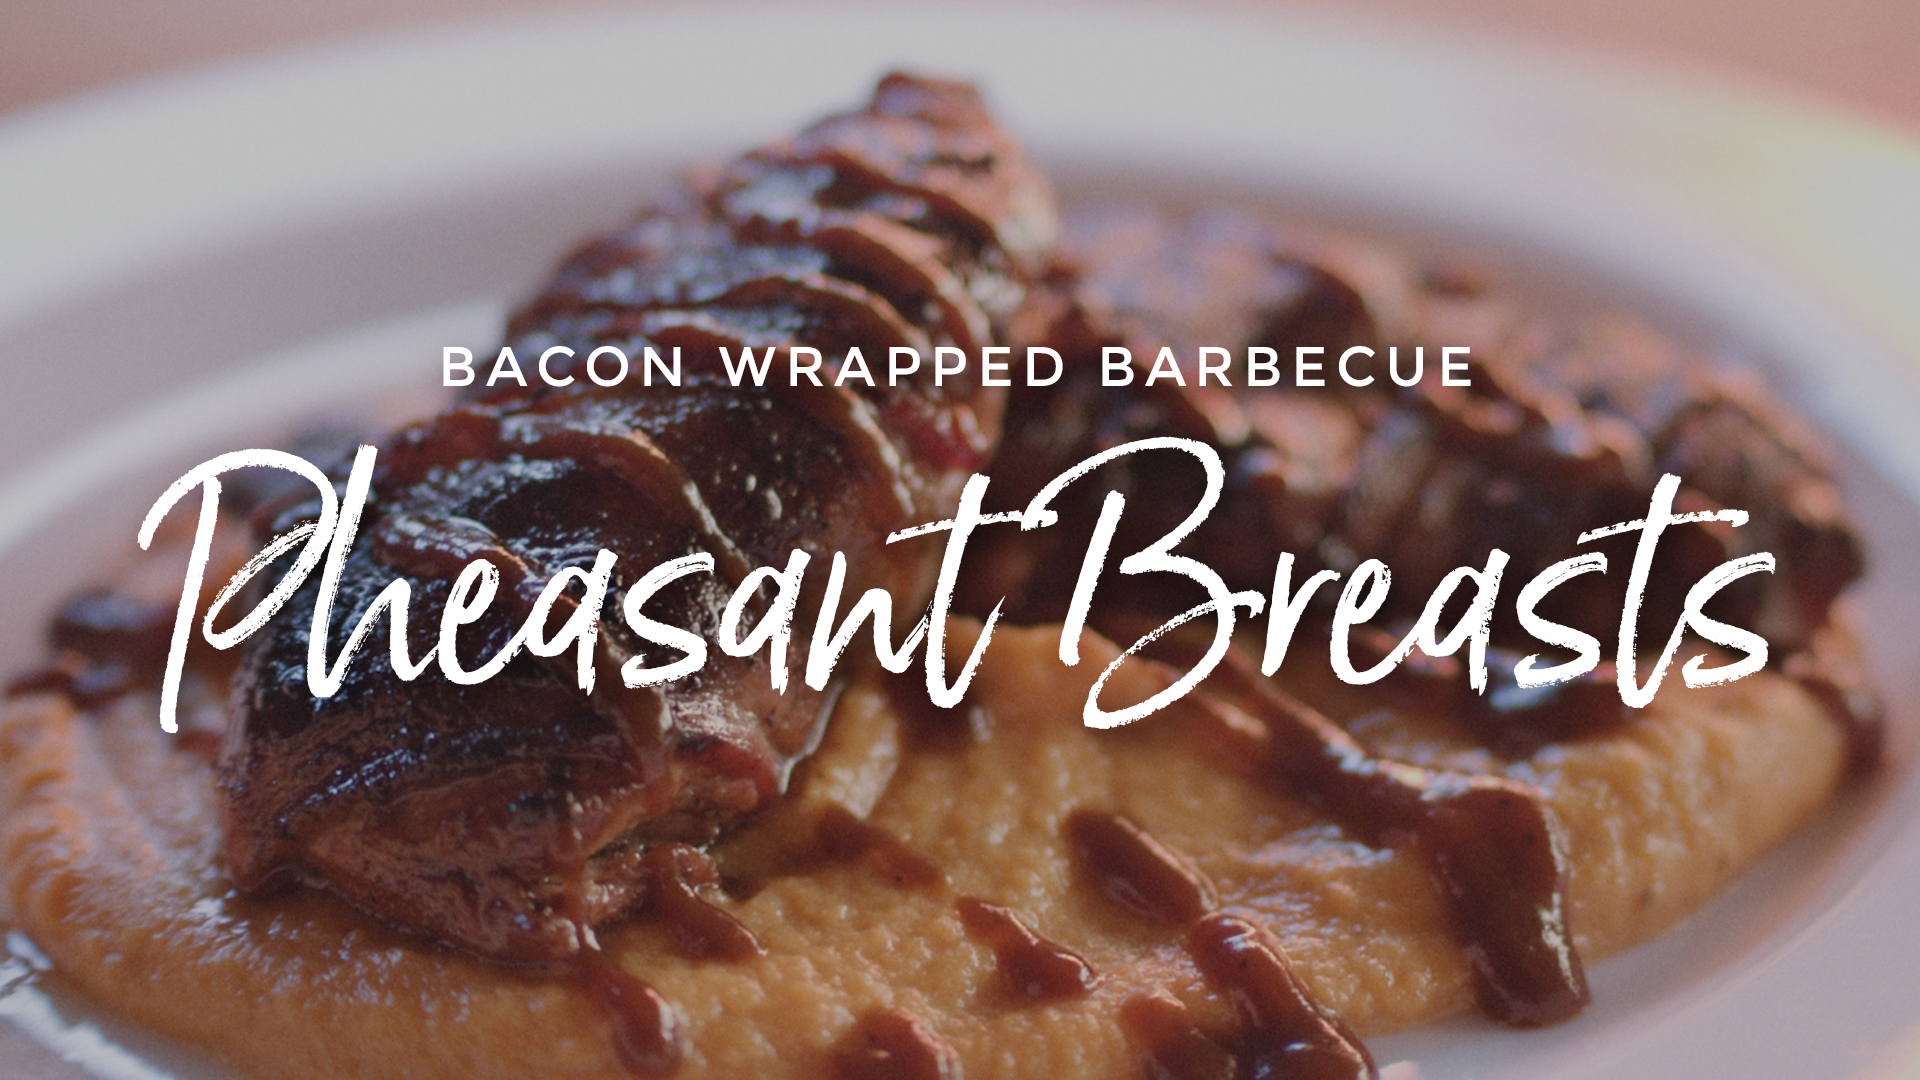 Bacon Wrapped Barbecue Pheasant Breasts Recipe Video